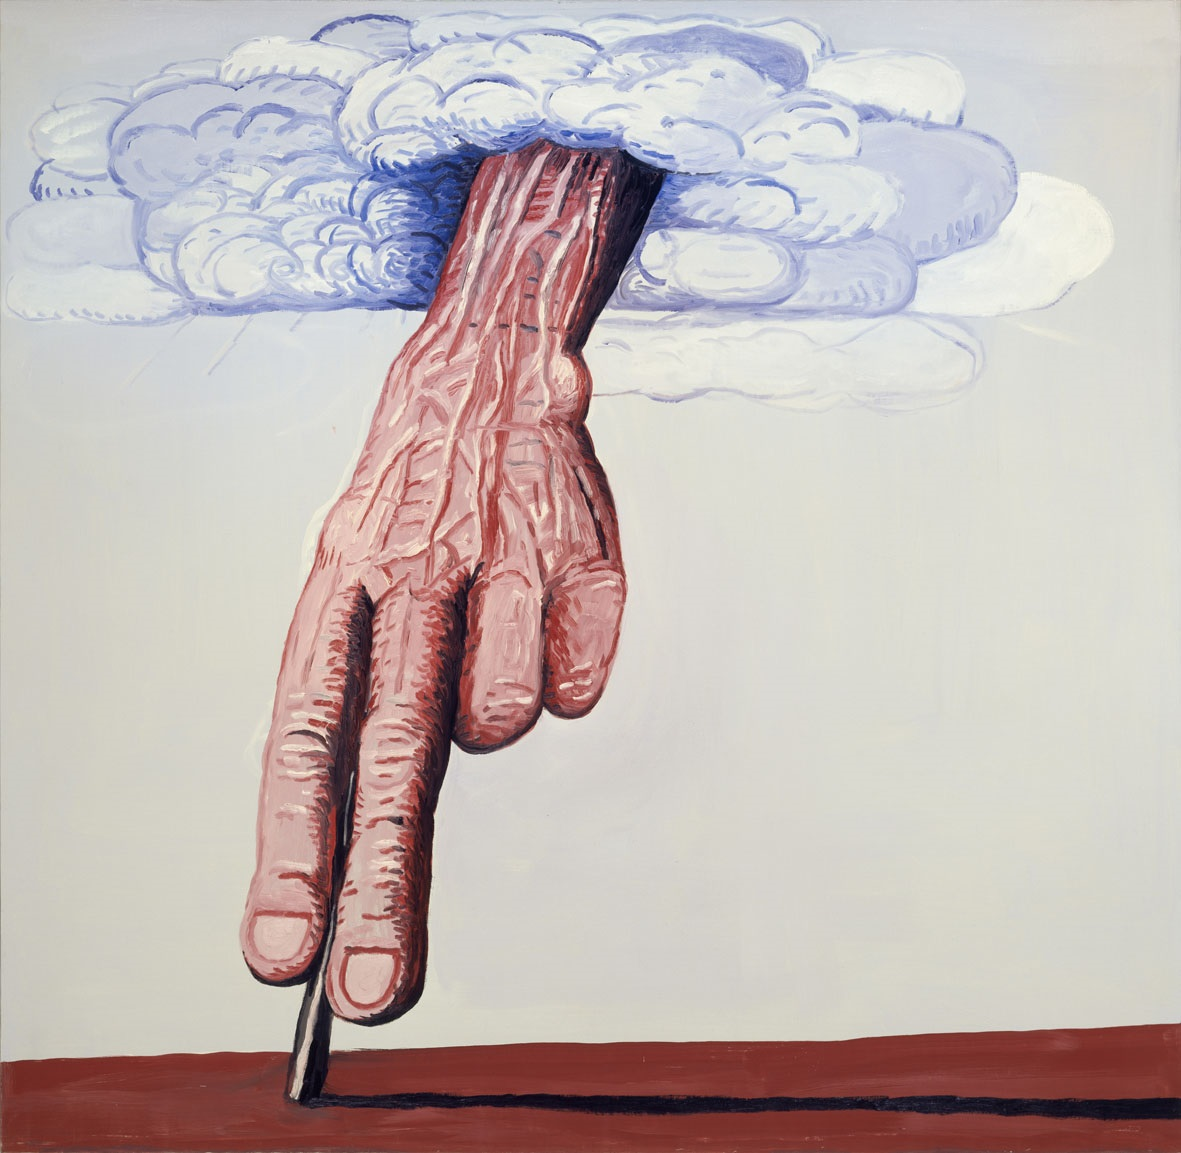 Philip Guston: The Line, 1978, oil on canvas, 71 x 73 1/4 in. Private Collection. © The Estate of Philip Guston. Curtesy Hauser & Wirth